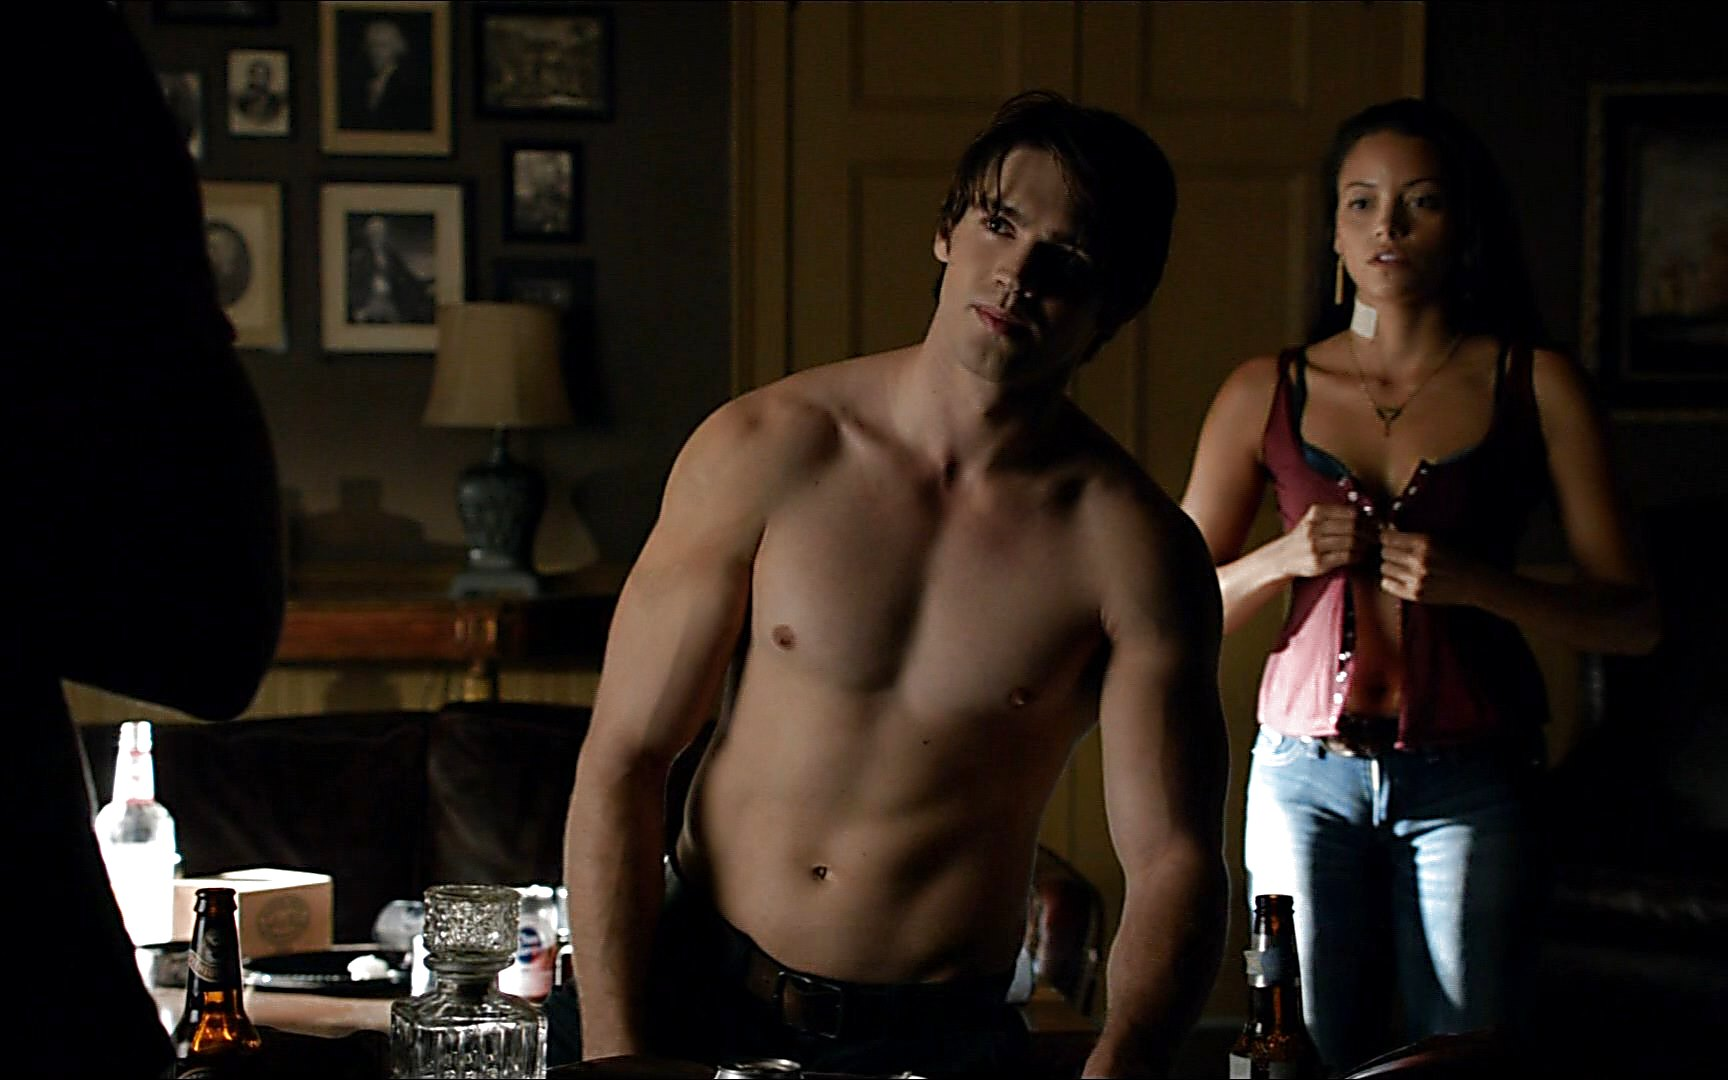 Steven R Mcqueen sexy shirtless scene November 2, 2014, 9pm